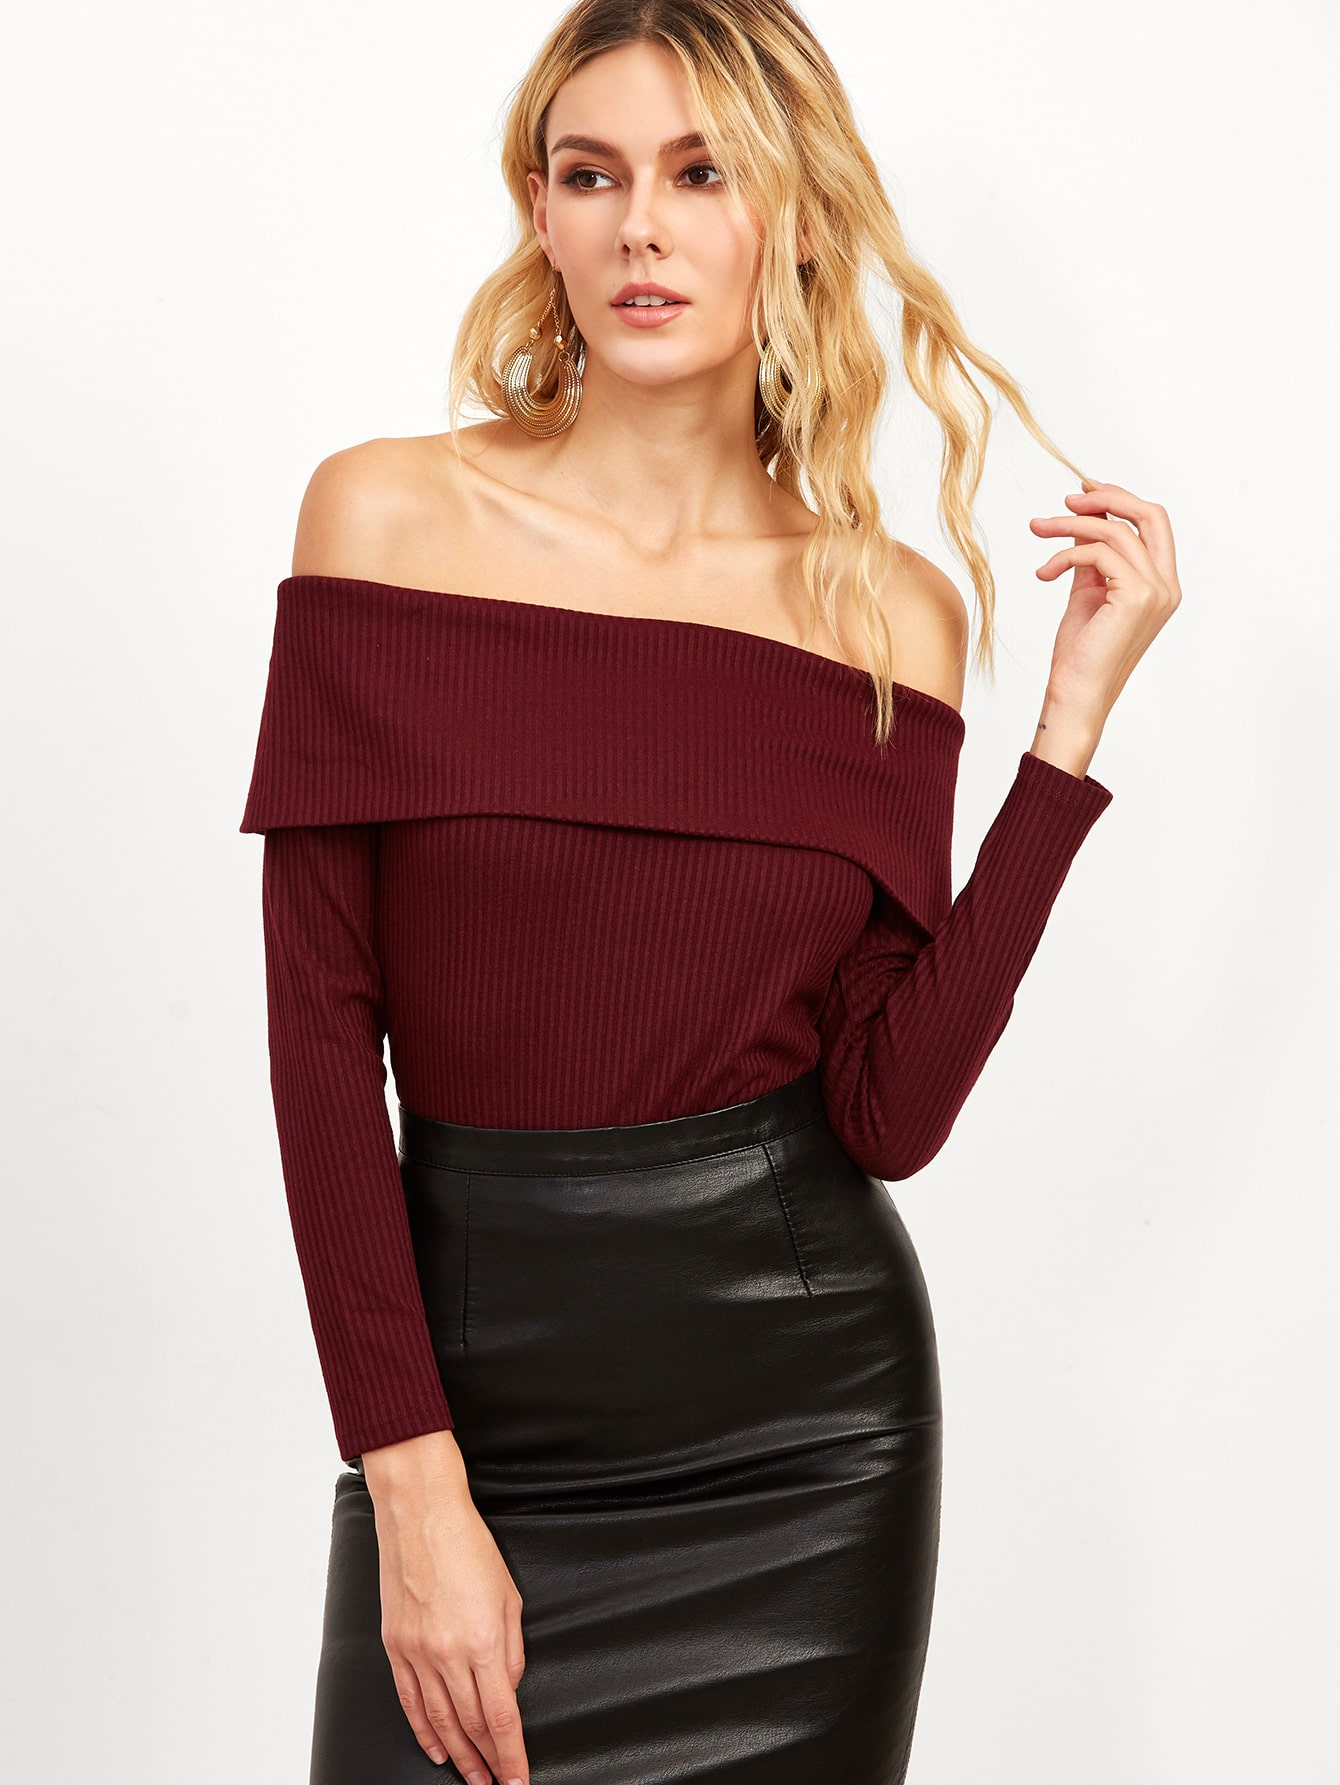 Burgundy Foldover Off The Shoulder Ribbed T-shirt tee160928402